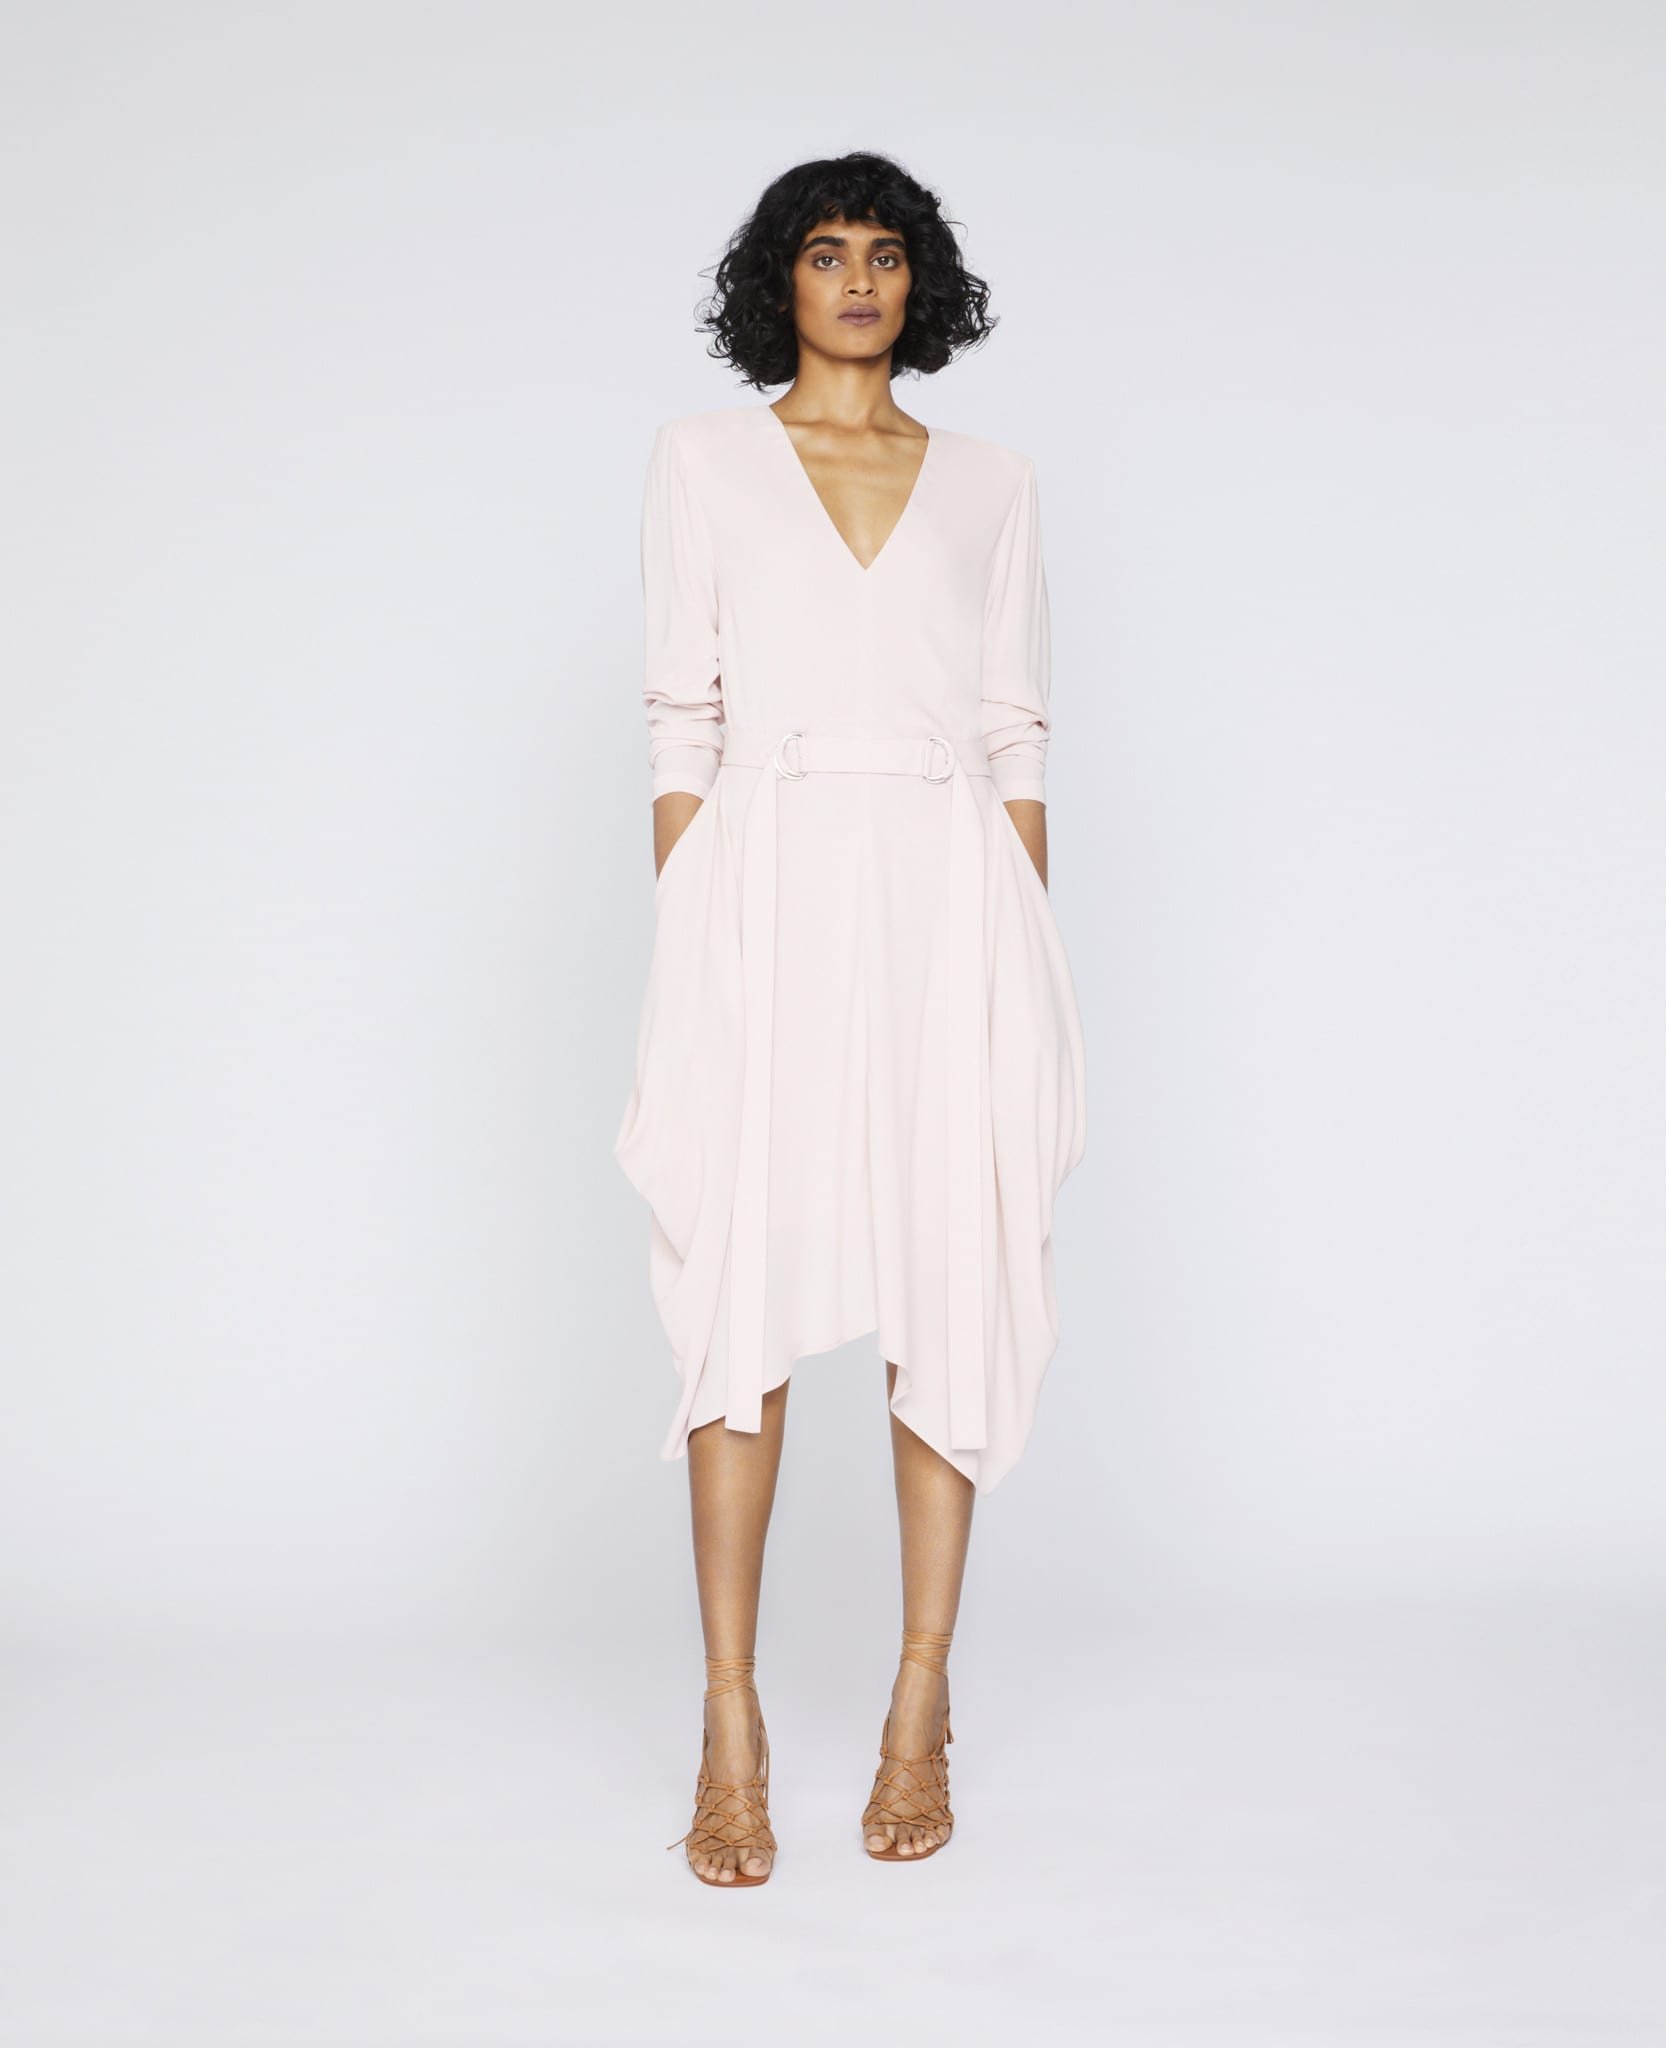 STELLA MCCARTNEY Lillie Dress